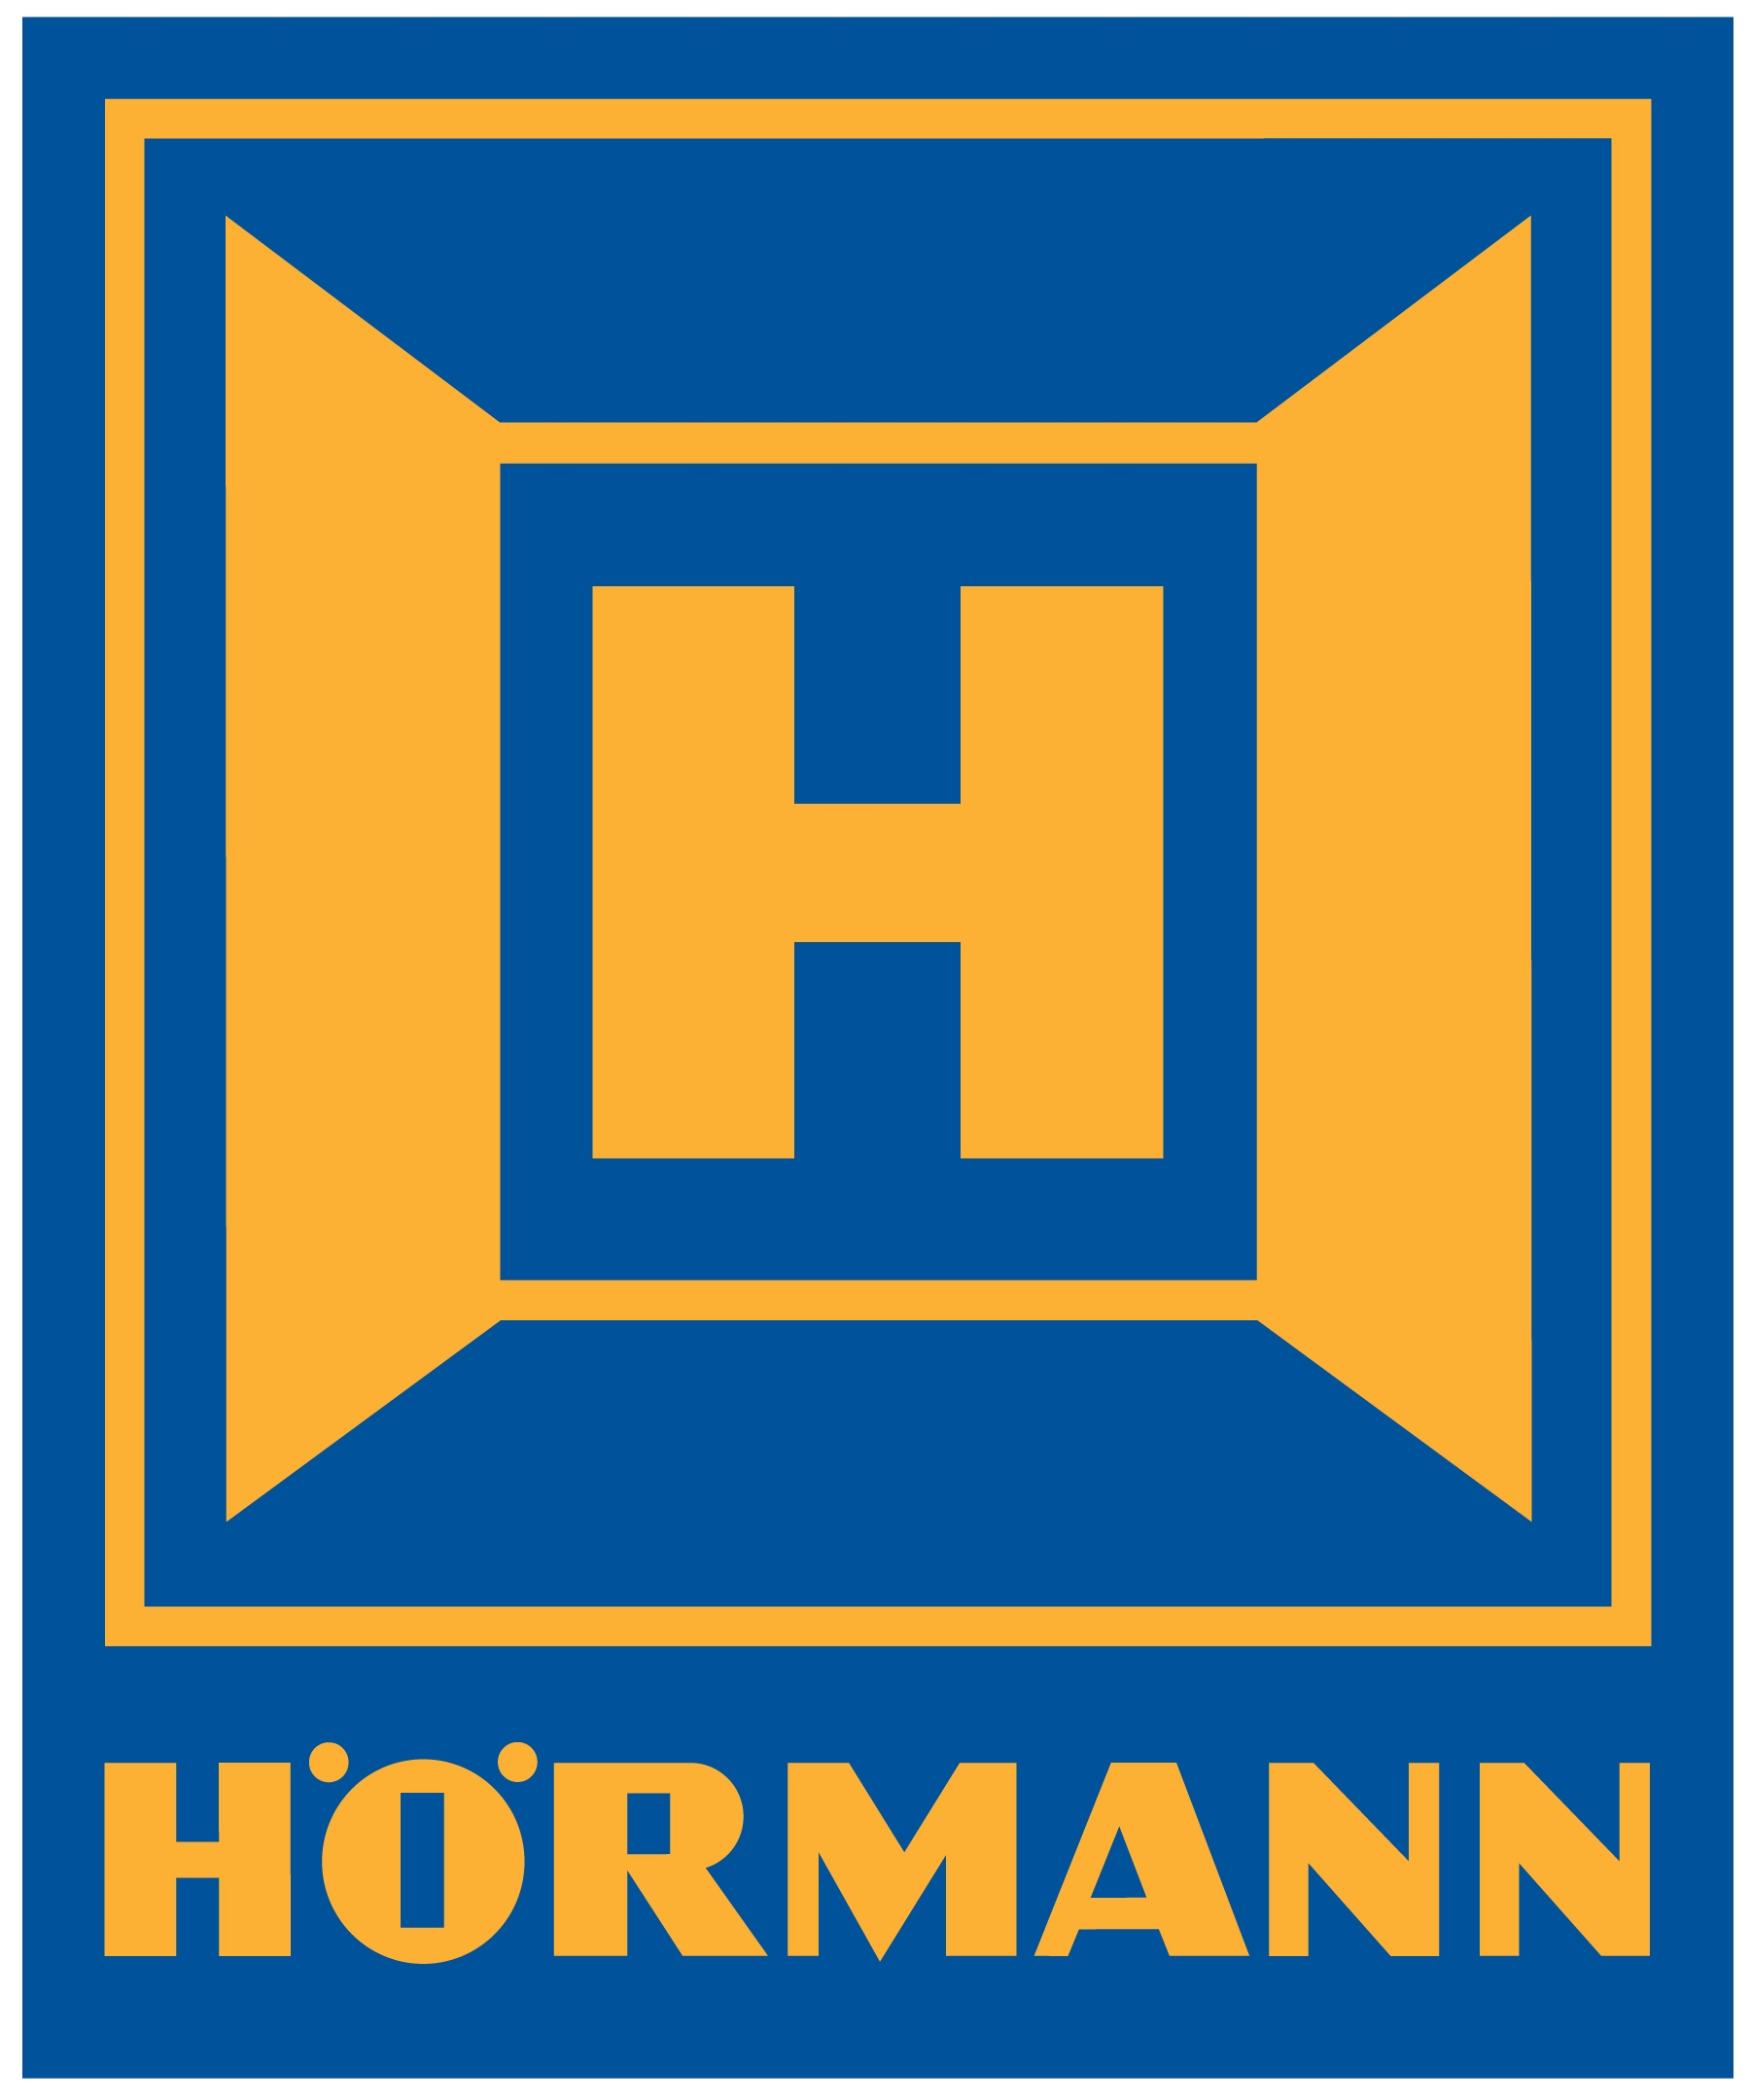 hormannlogo.jpg - 336.35 Kb